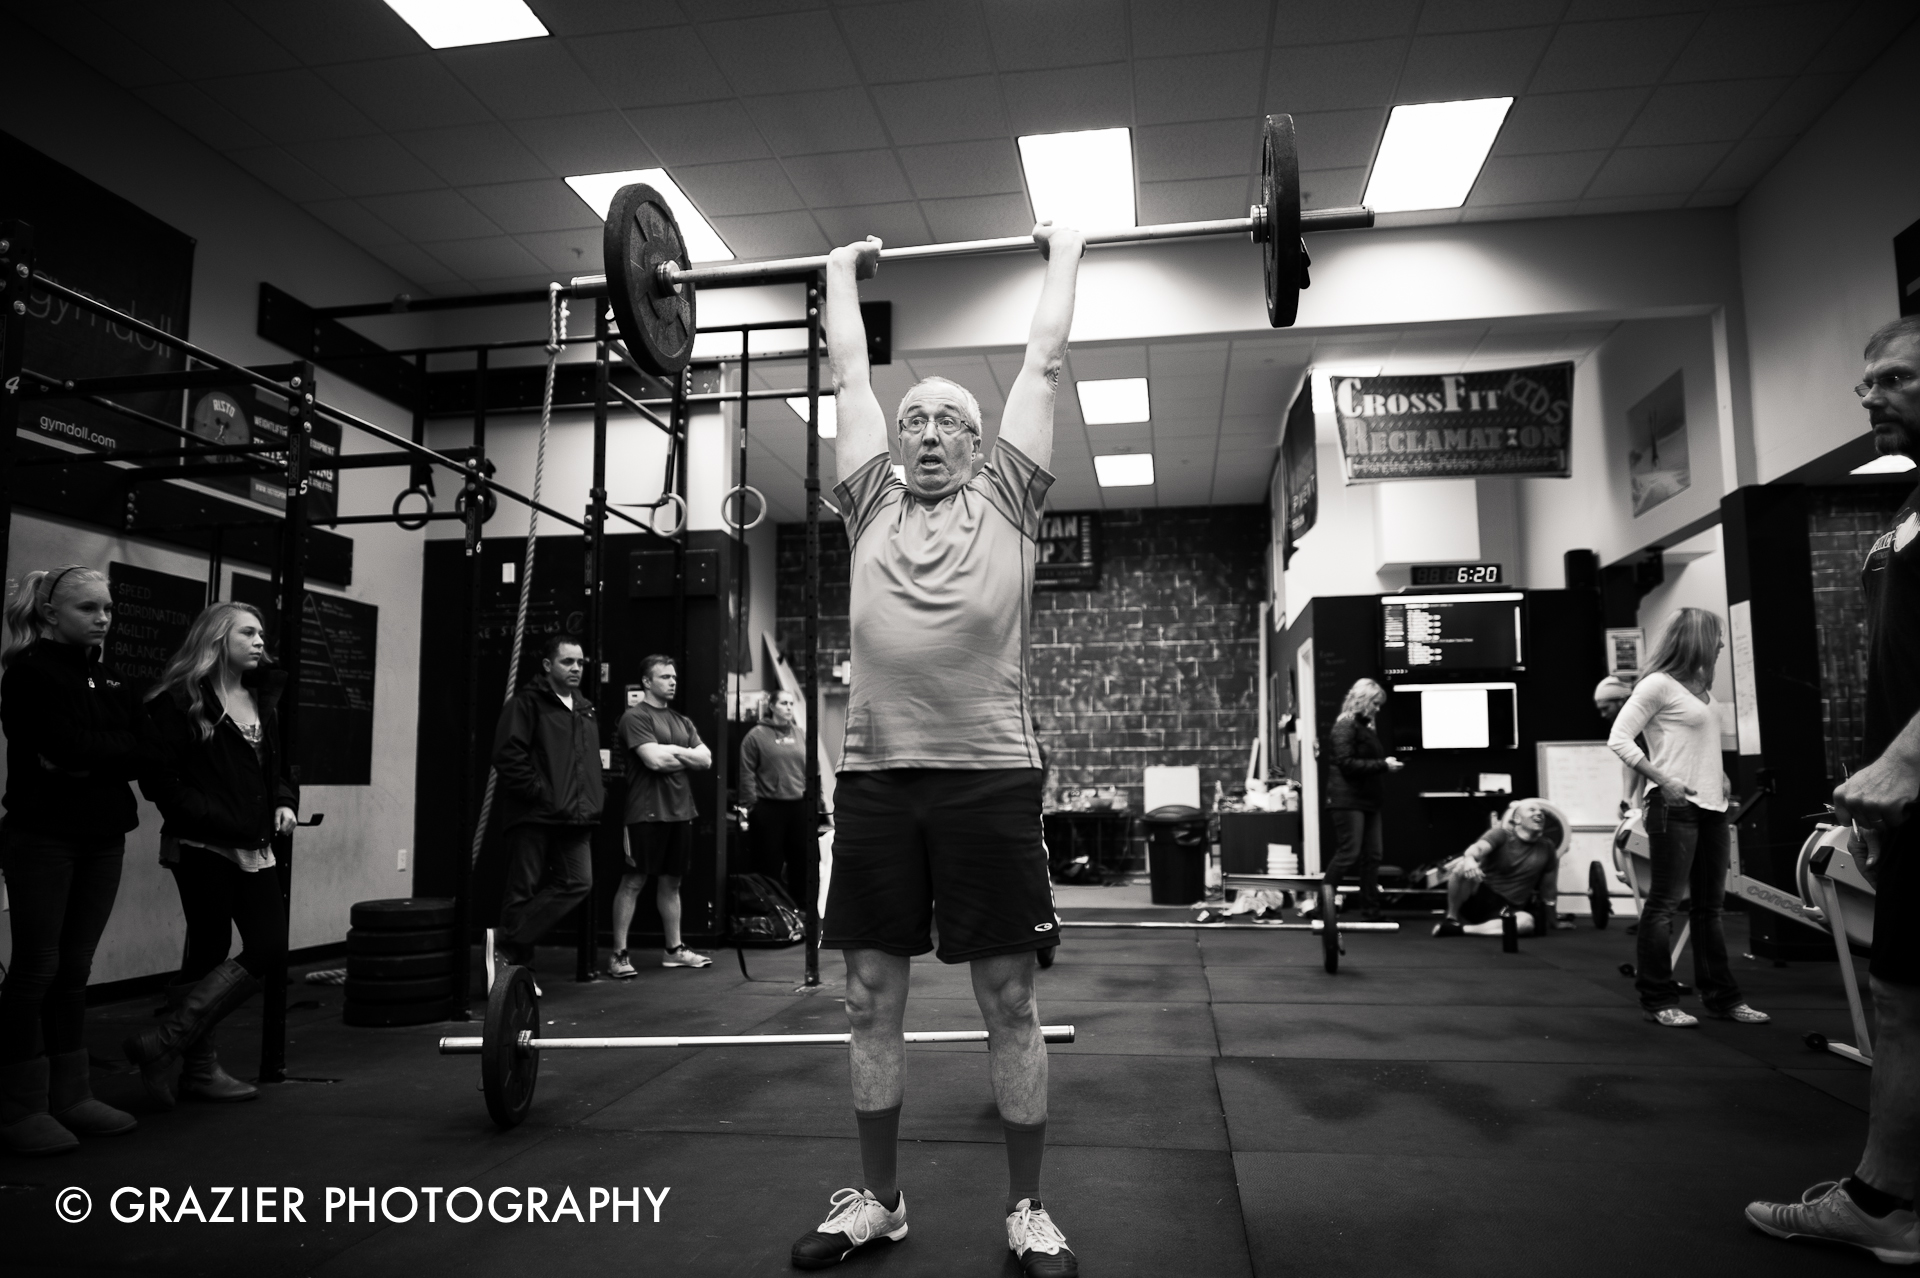 Grazier_Photography_Crossfit_150328-32.JPG